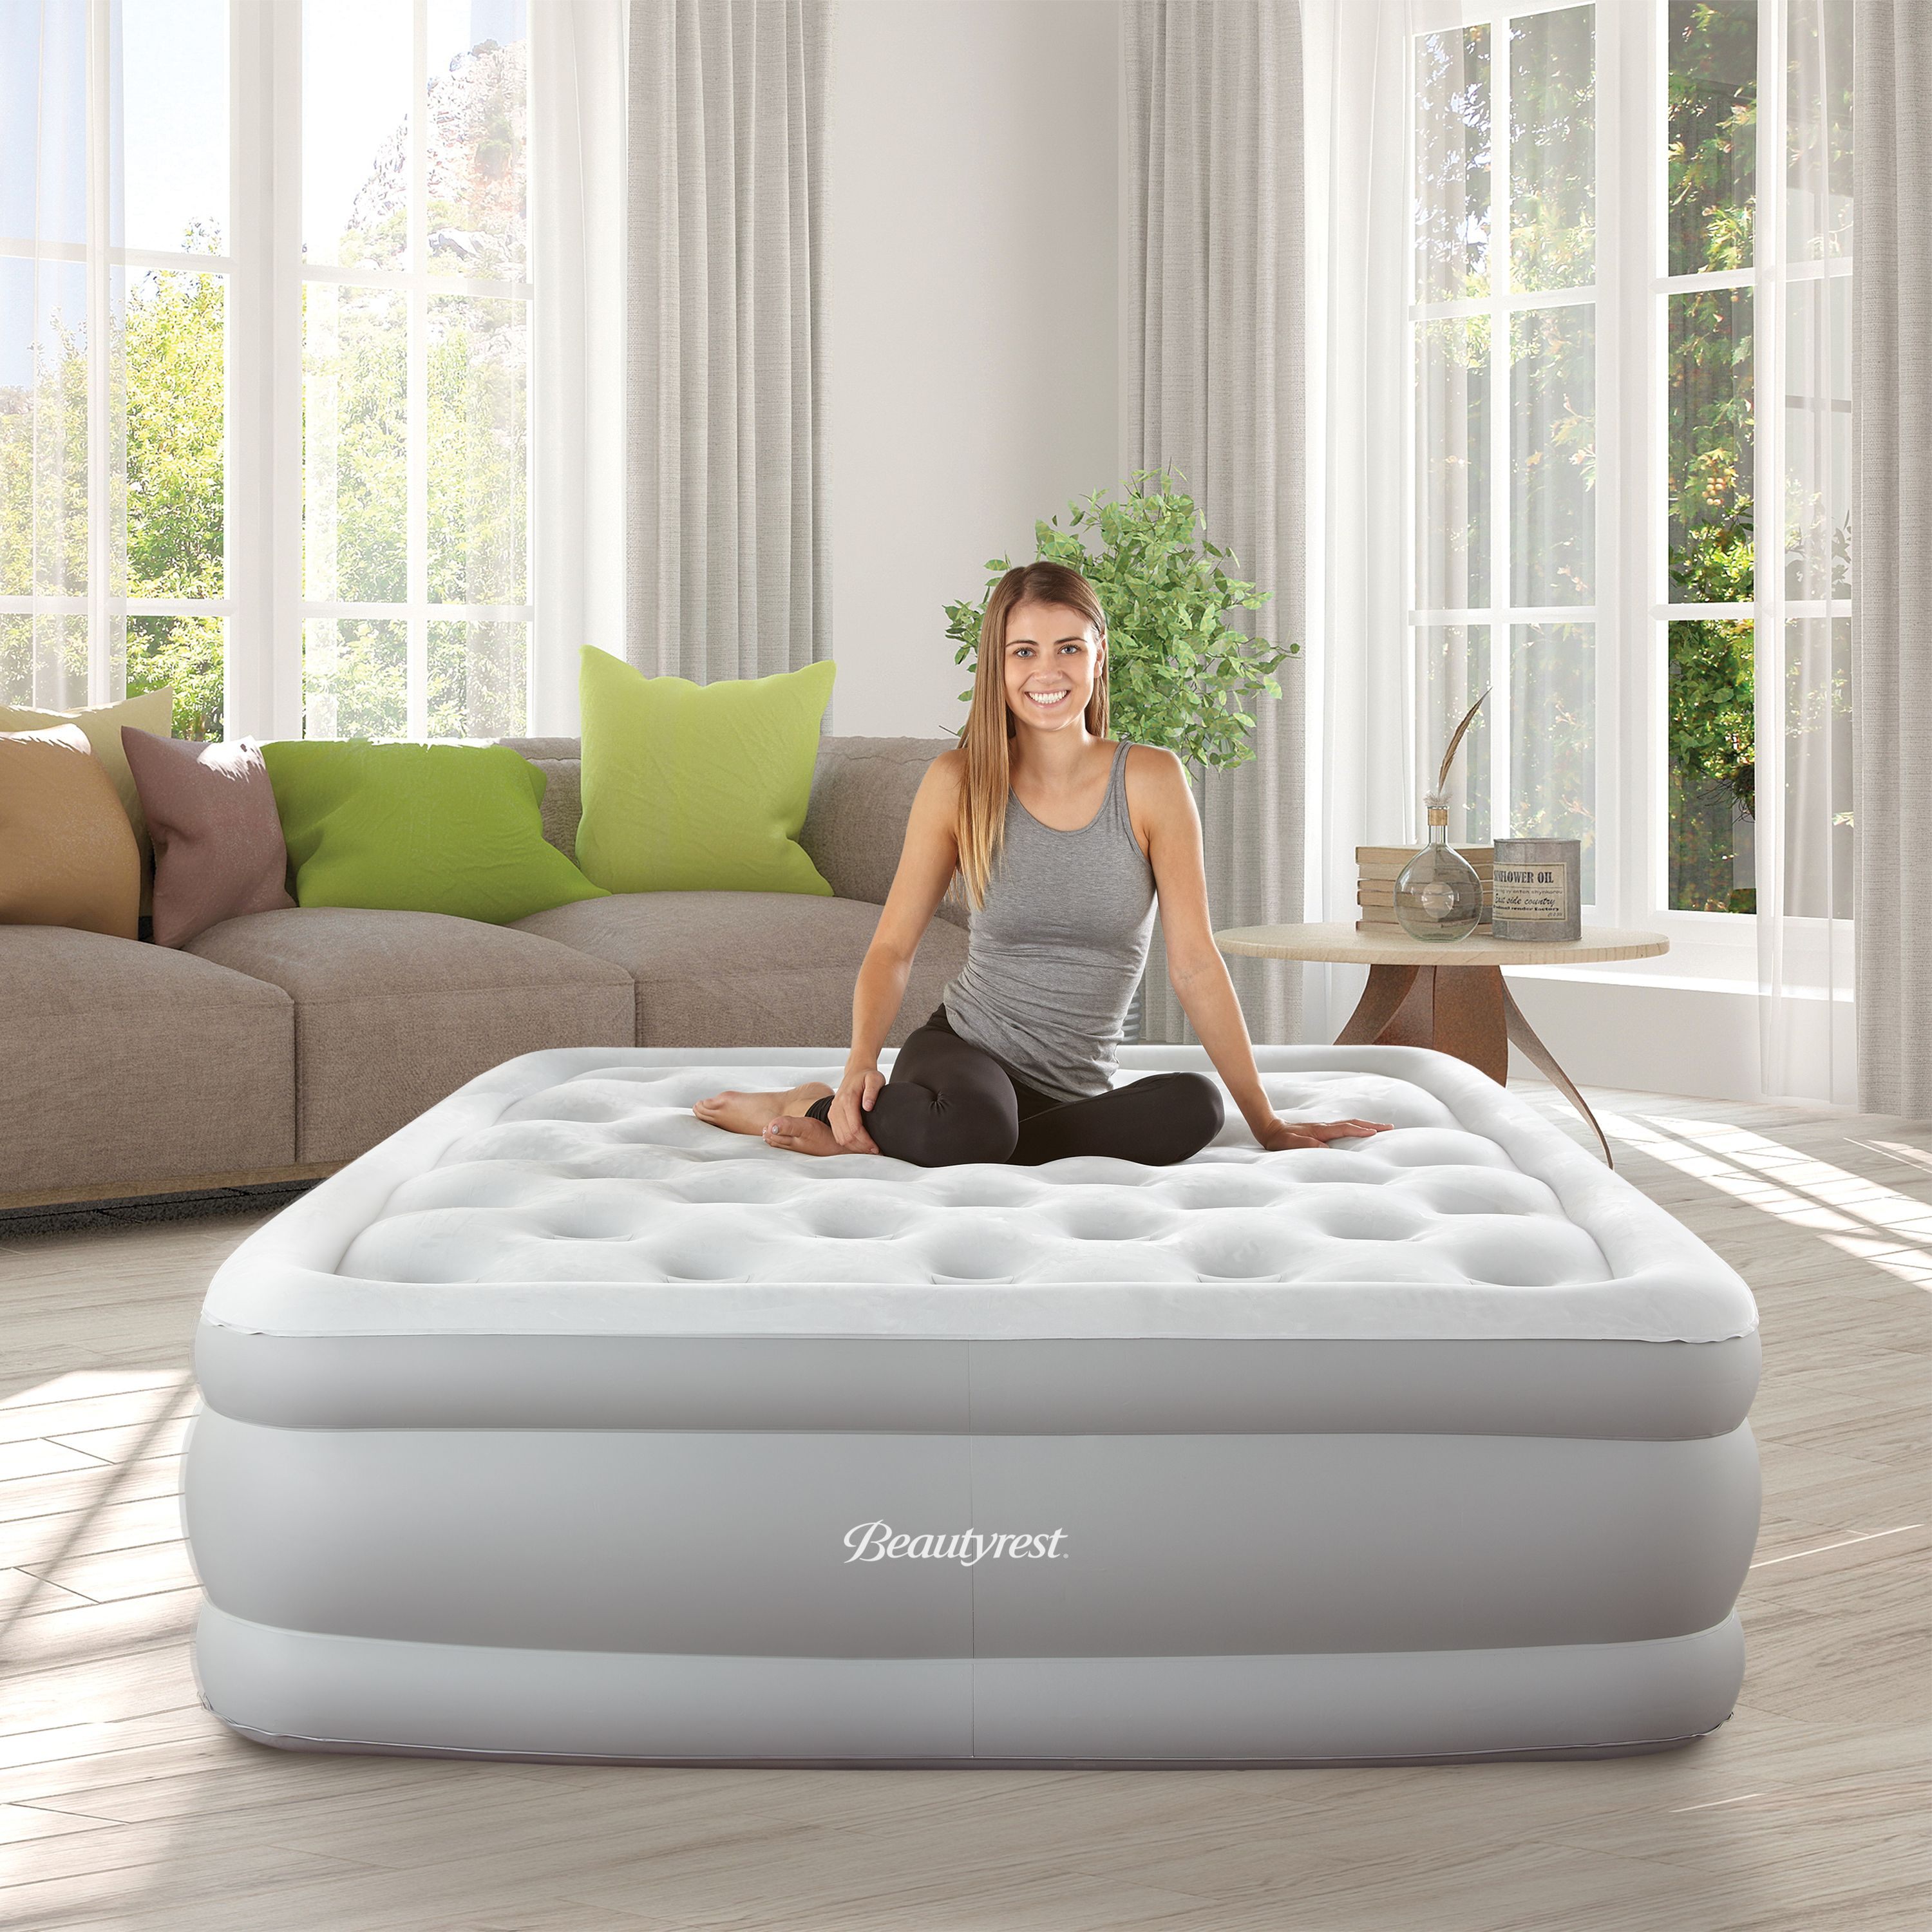 Simmons Beautyrest Sky Rise Raised Air Bed Mattress With Hands Free Express Pump Multiple Sizes Raised Air Bed Air Bed Adjustable Beds Bed Mattress